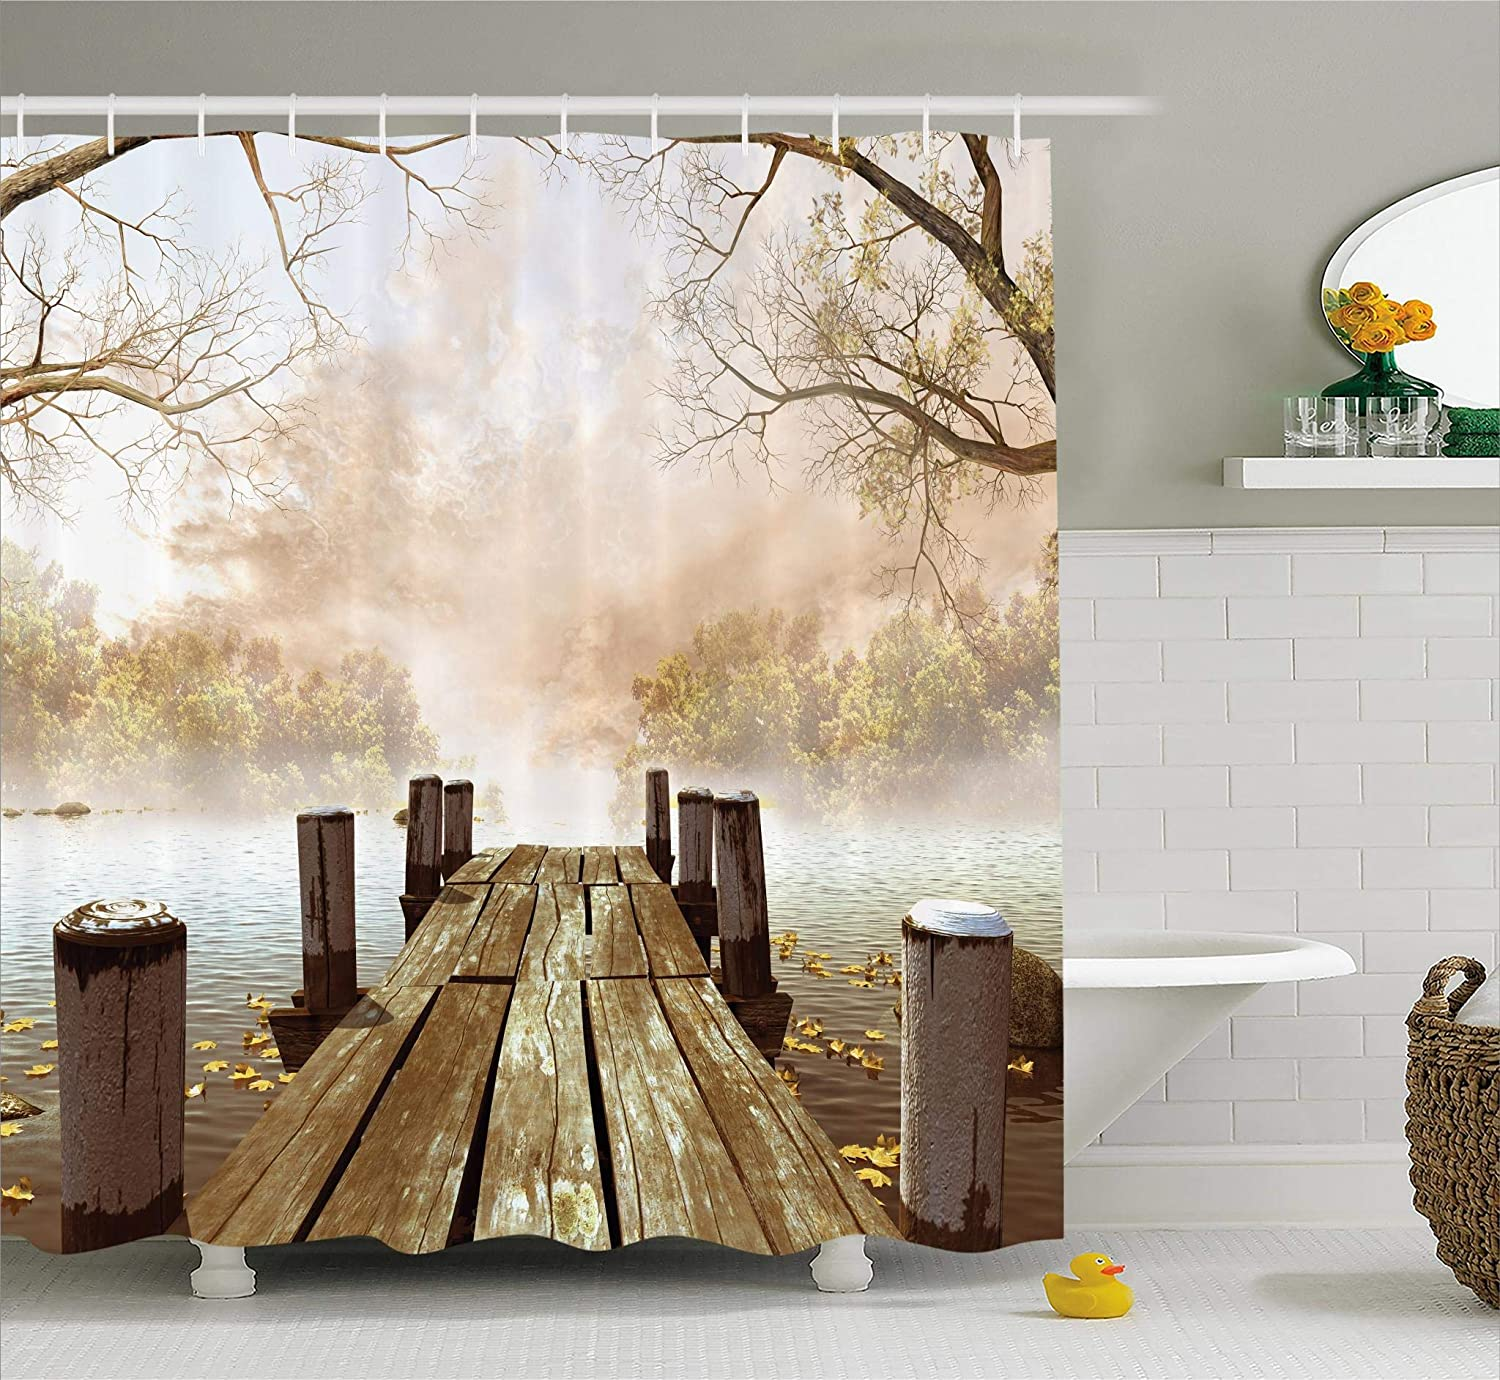 Ambesonne Shower Curtain Collection, Ocean Decor Fall Wooden Bridge Seasons Lake House Nature Country Rustic Home Art Paintings Pictures for Bathroom Seascape Decorations, Brown Beige Khaki Yellow